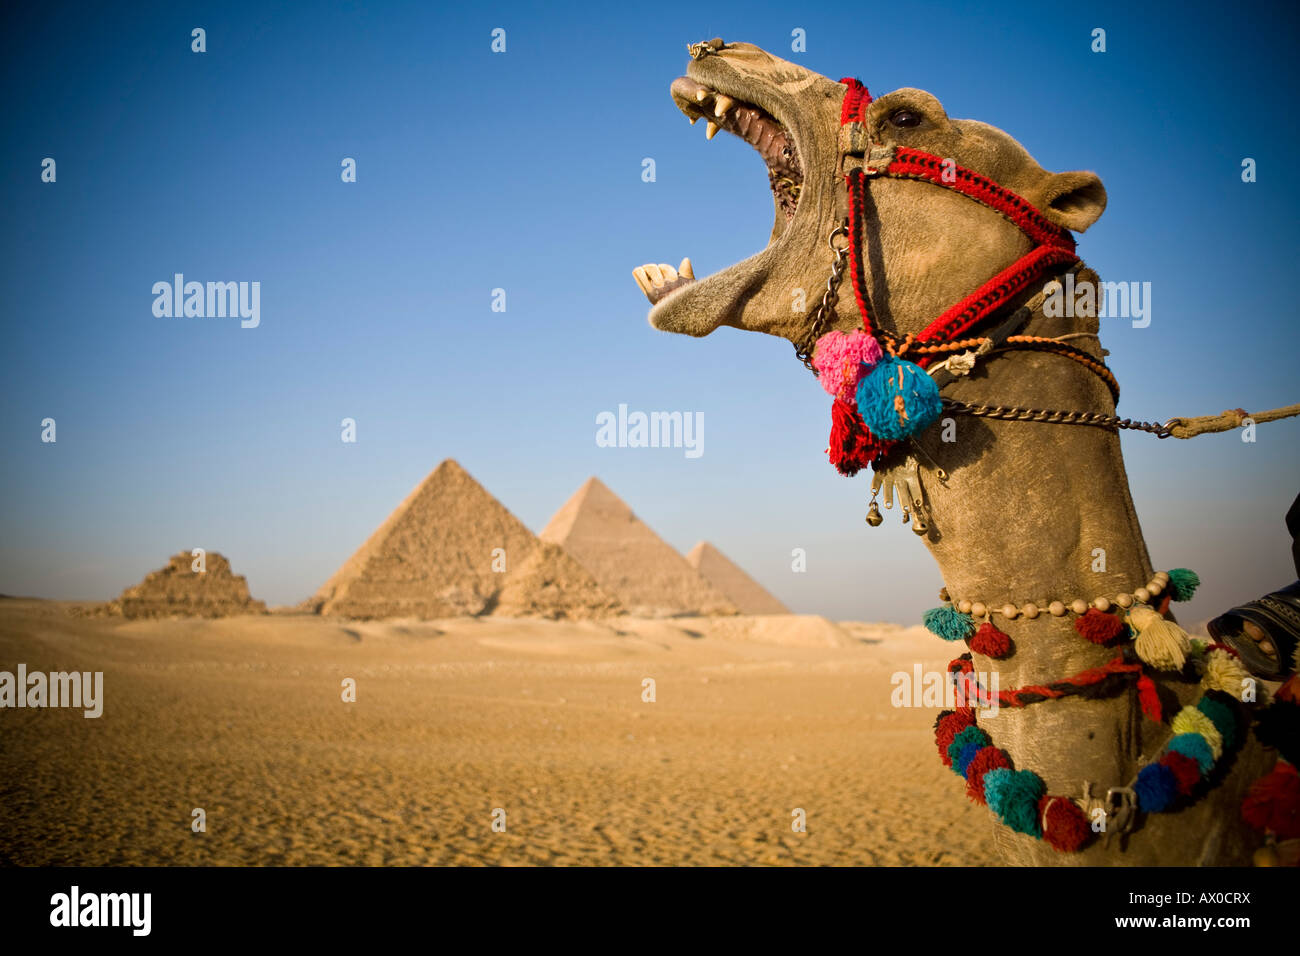 Camel au Pyramids, Giza, Le Caire, Egypte Photo Stock